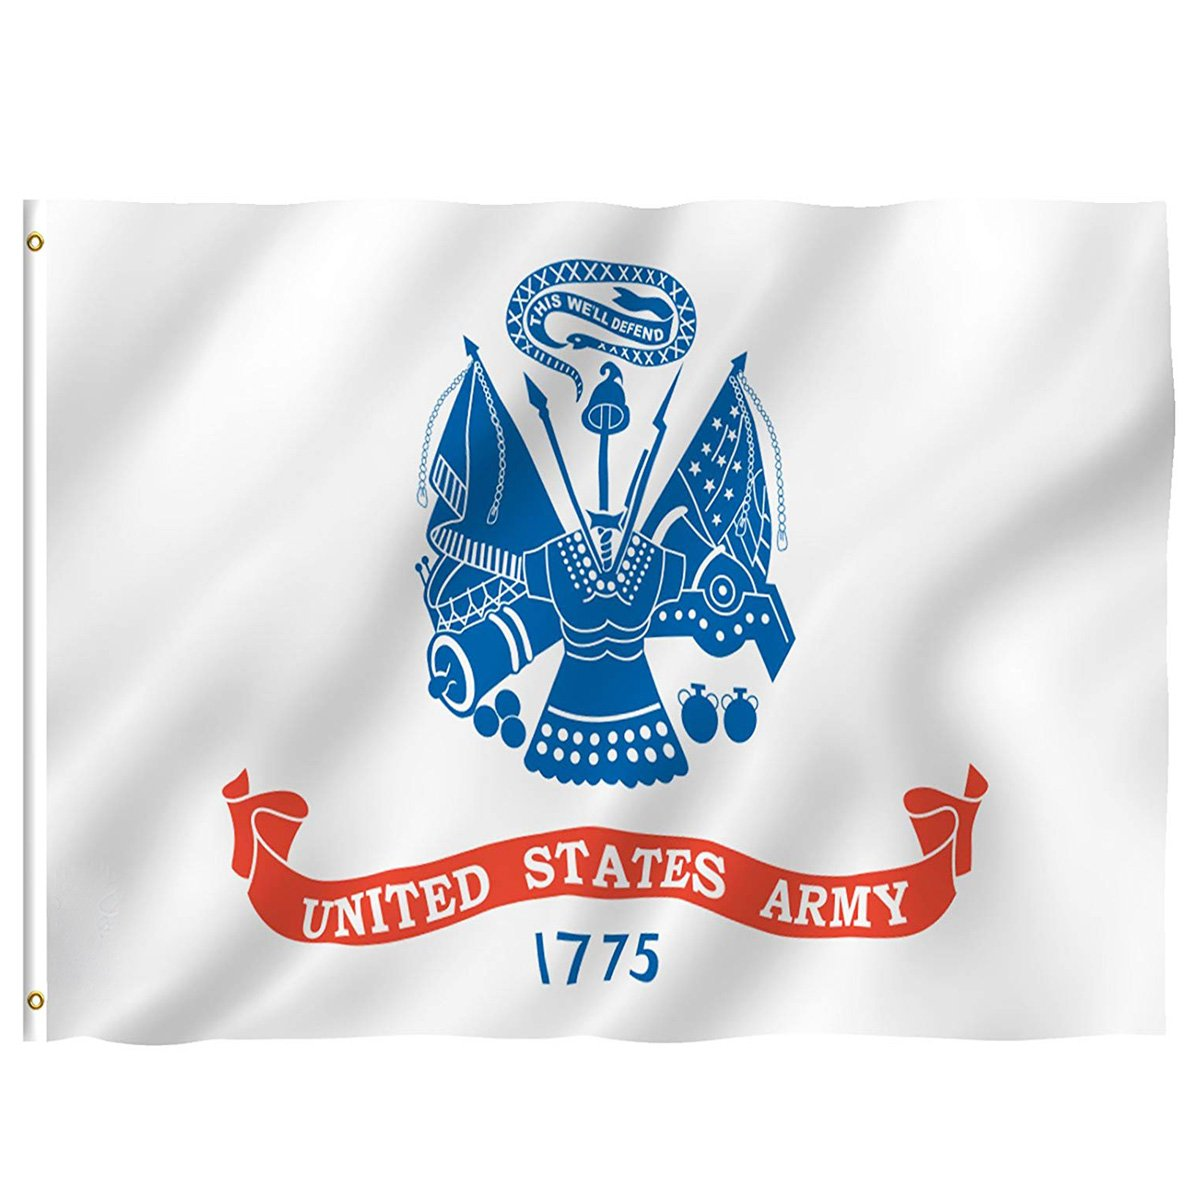 America Flags USA Army Military Patriotic Soldier Flag 4x6 Feet with Brass Grommet Double Stitch United States Soldiers Military Veterans Day Banner Garden Flag House Decorations for Indoor Outdoor